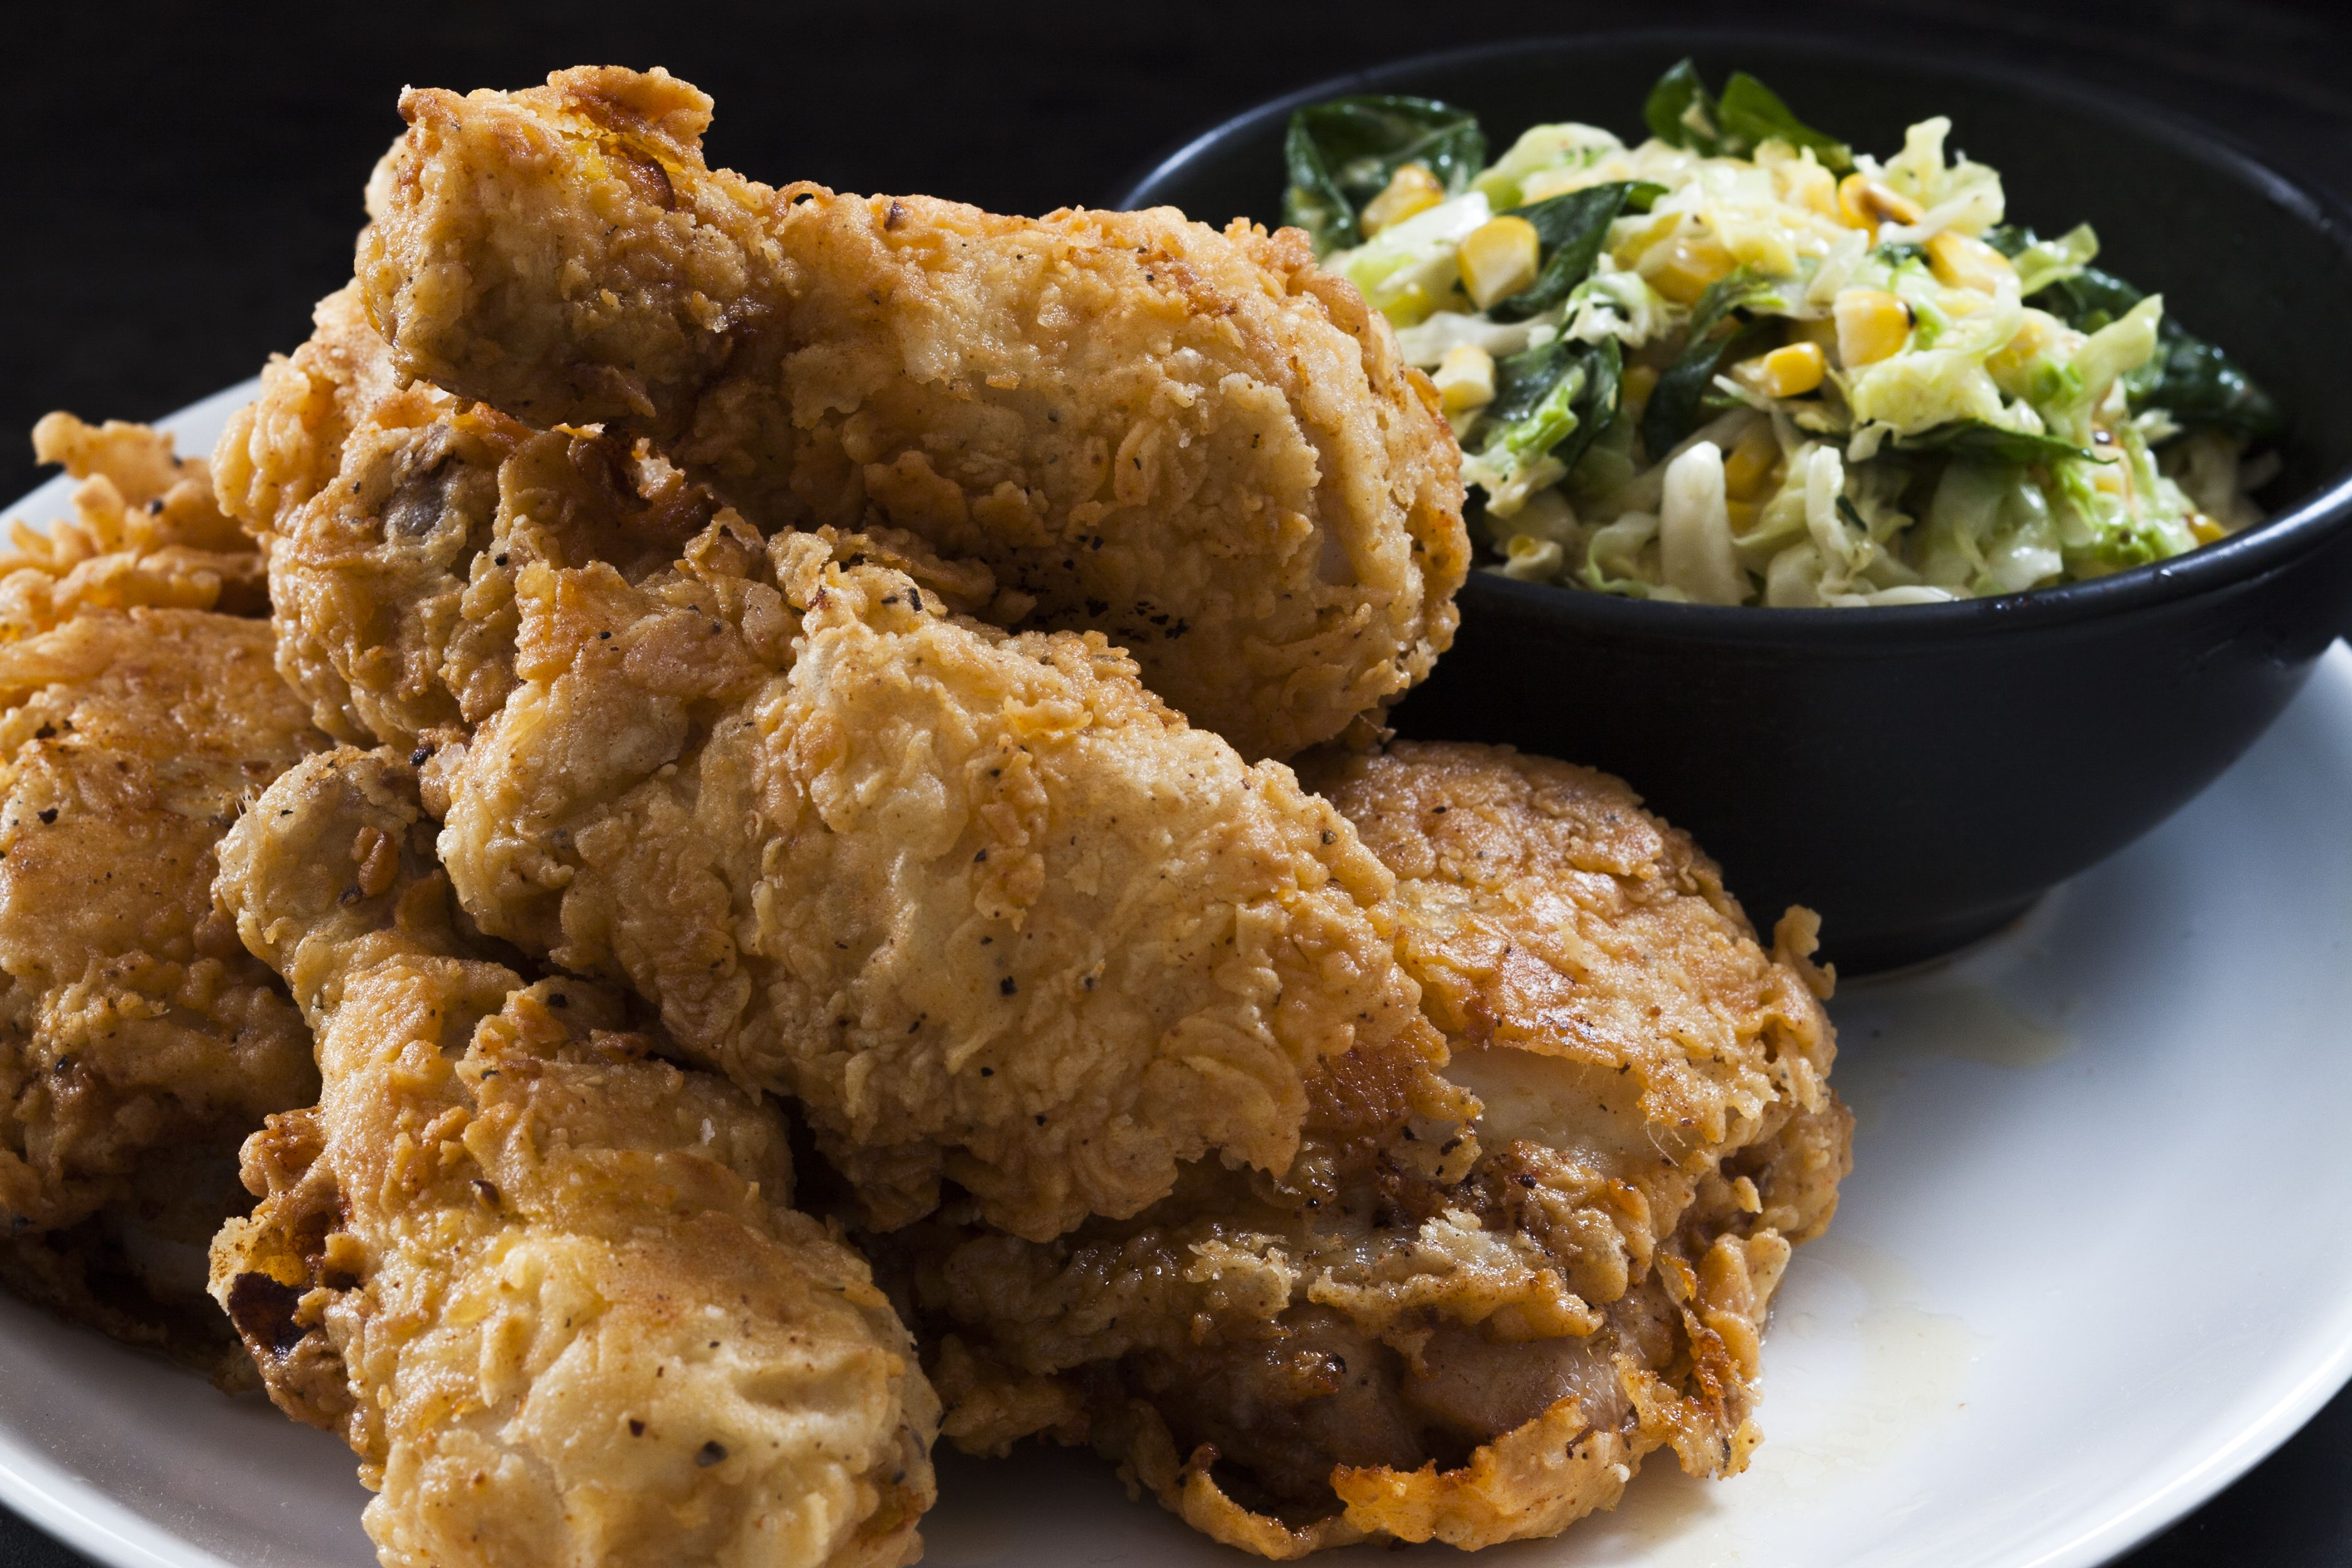 Chef Alexander Smalls Southern Panfried Chicken Celebrating Dr. King